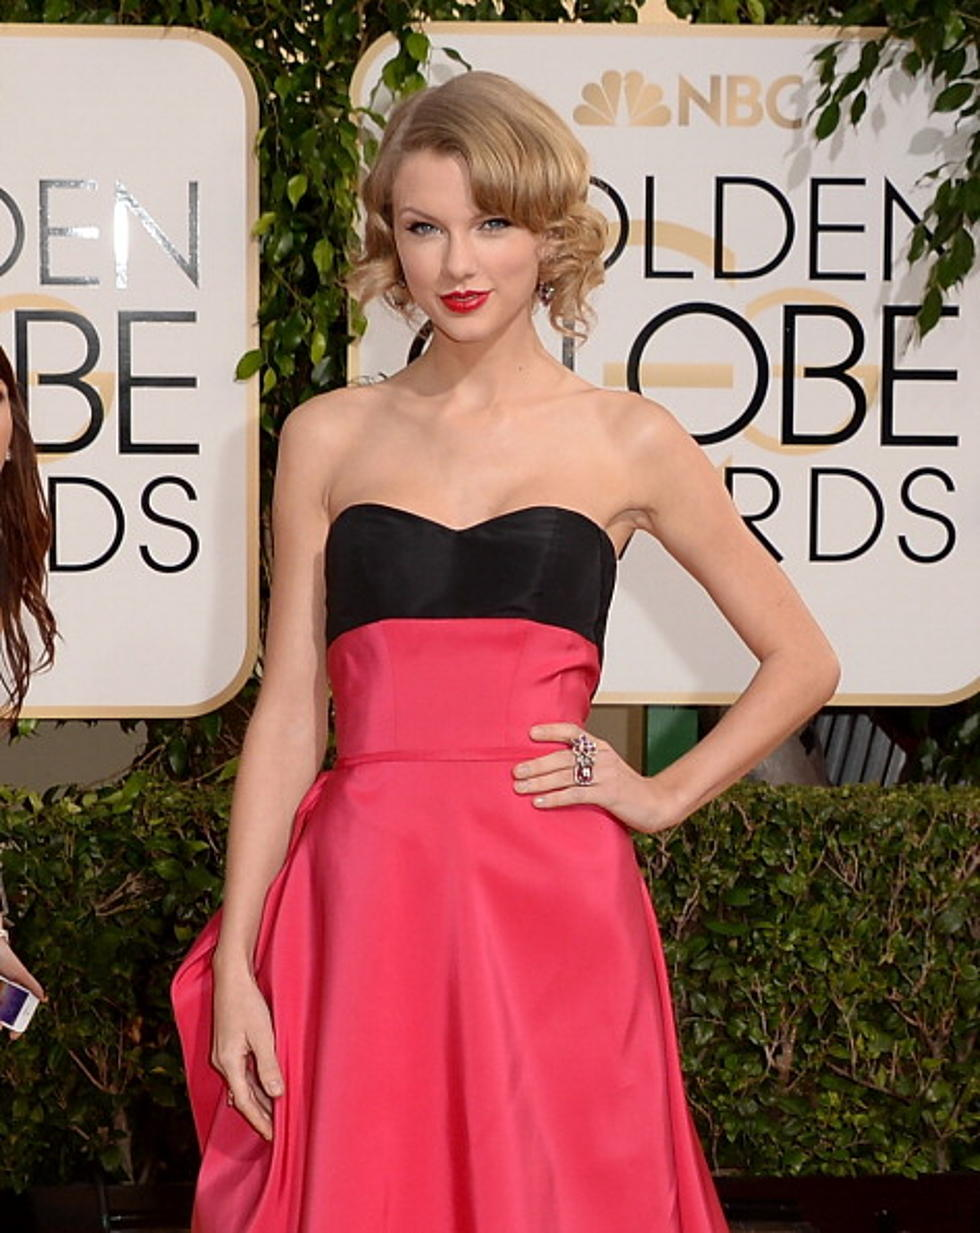 Tina Fey Slams Taylor Swift Again At Golden Globes